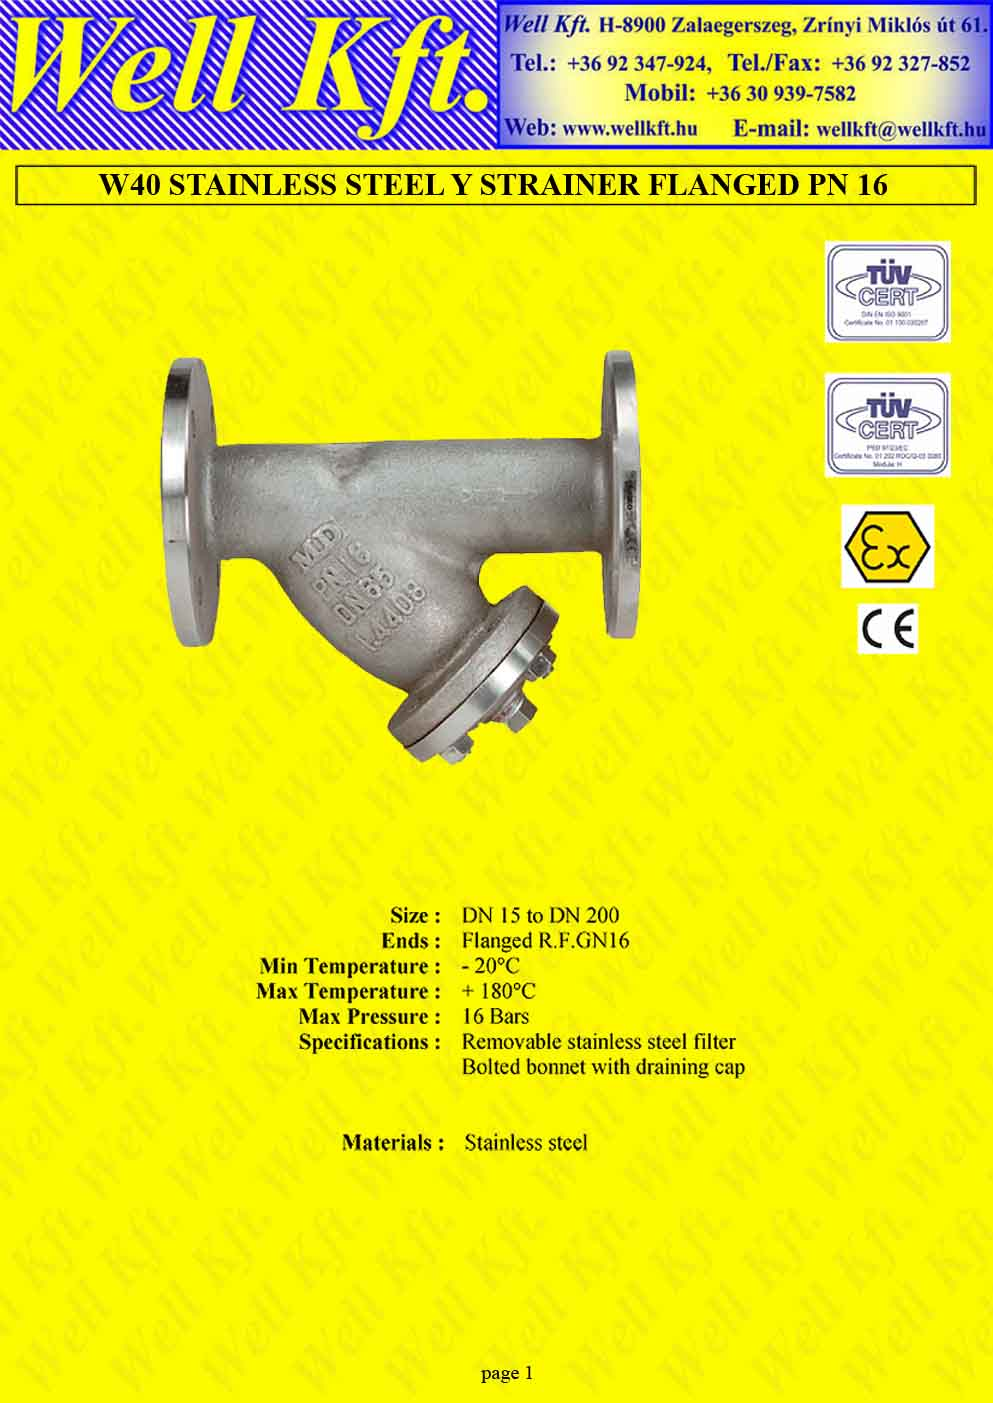 Y strainer stainless steel flanged PN 16  (1.)